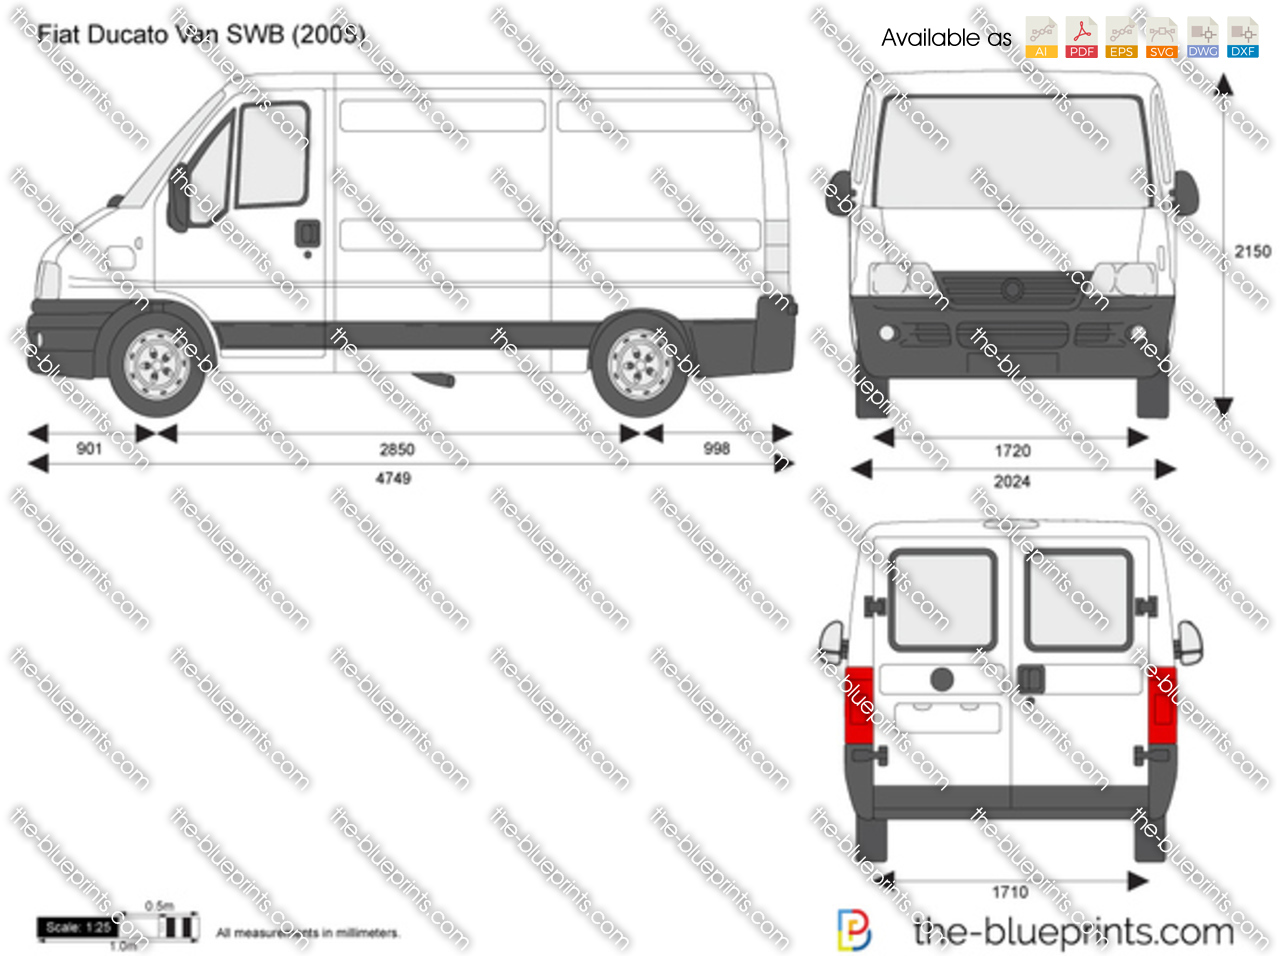 fiat ducato van swb vector drawing